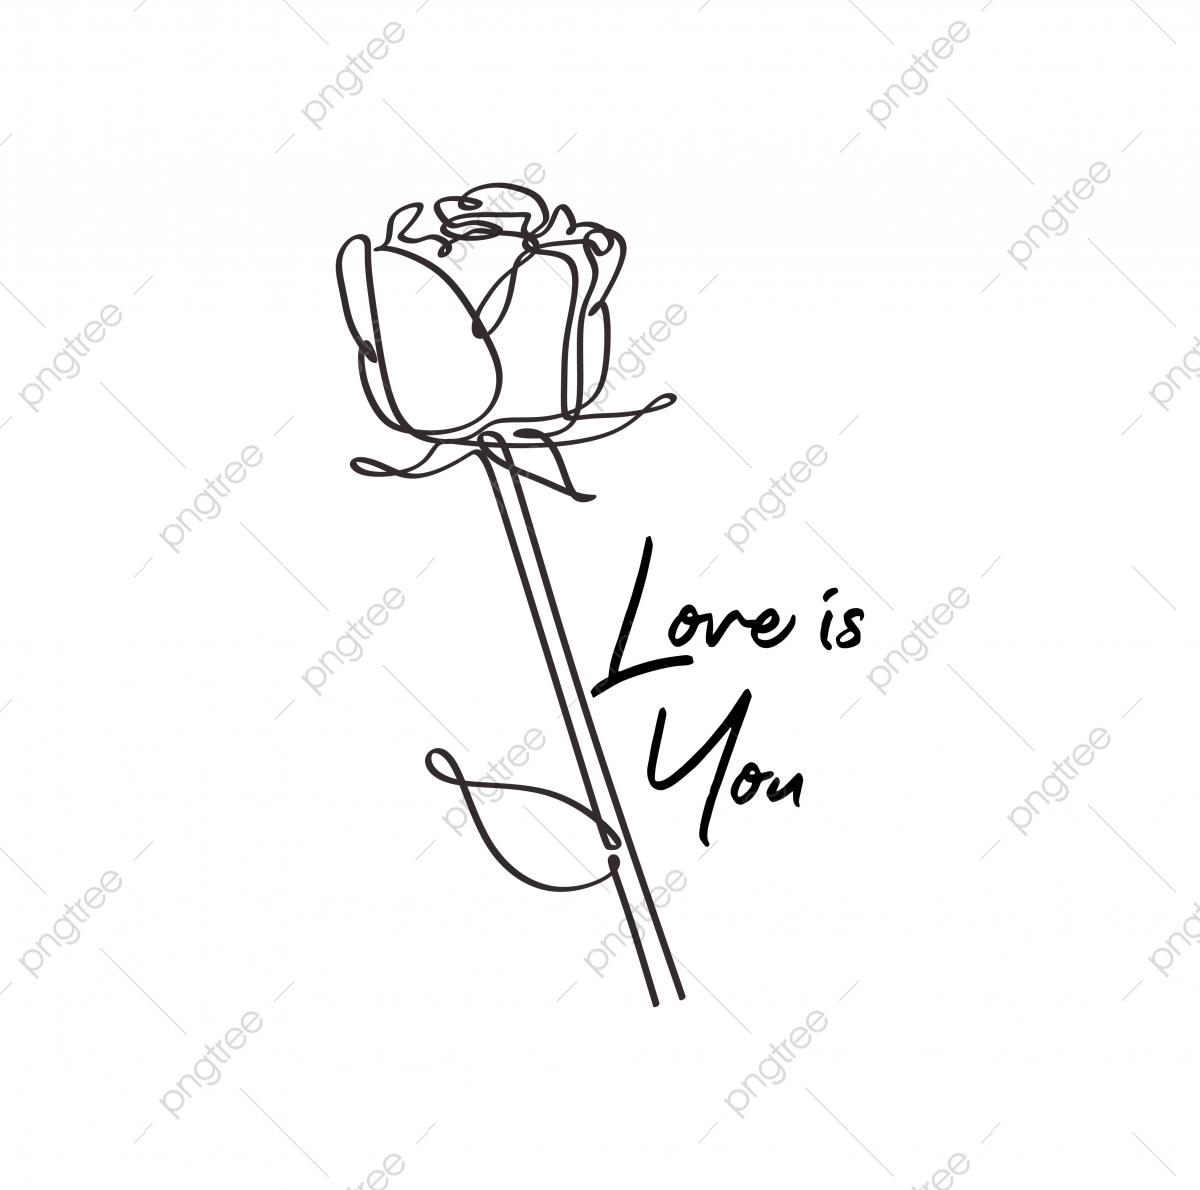 Love Is You Continuous Line Drawing Of Rose Bud Flower Minimalism And Simplicity Design Poster Rose Design Line Png And Vector With Transparent Background For Free Download